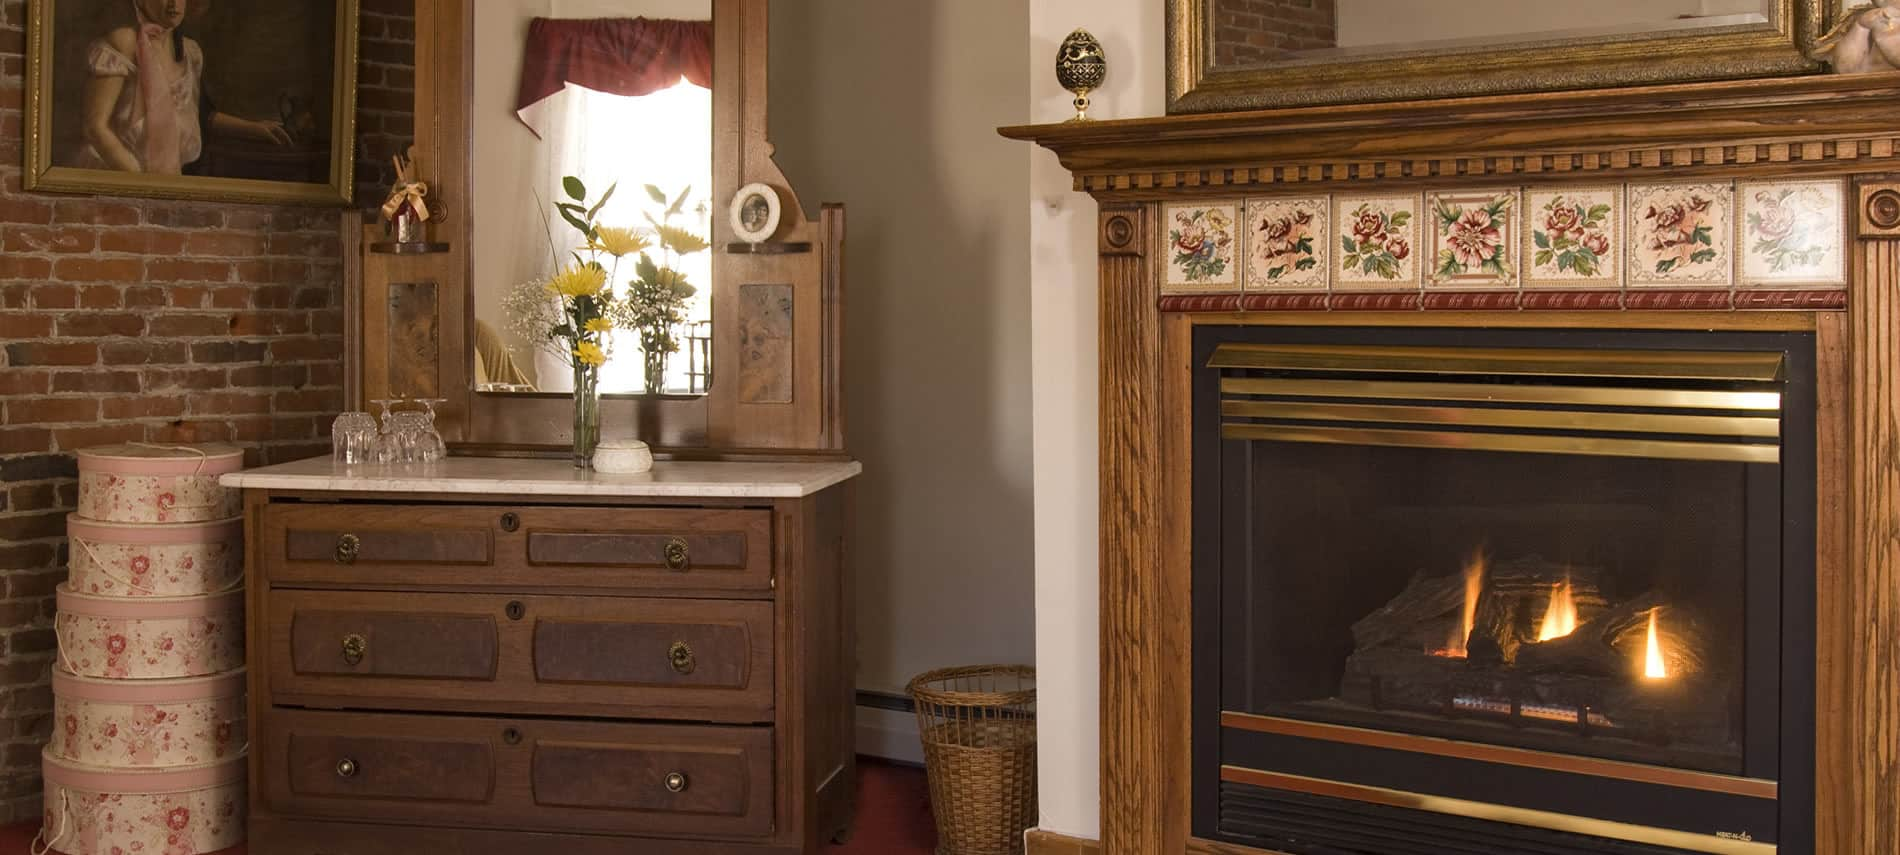 Fireplace with wood wrap around mantel and decorative tile inserts, corner chest with mirror, and brick wall with framed portrait